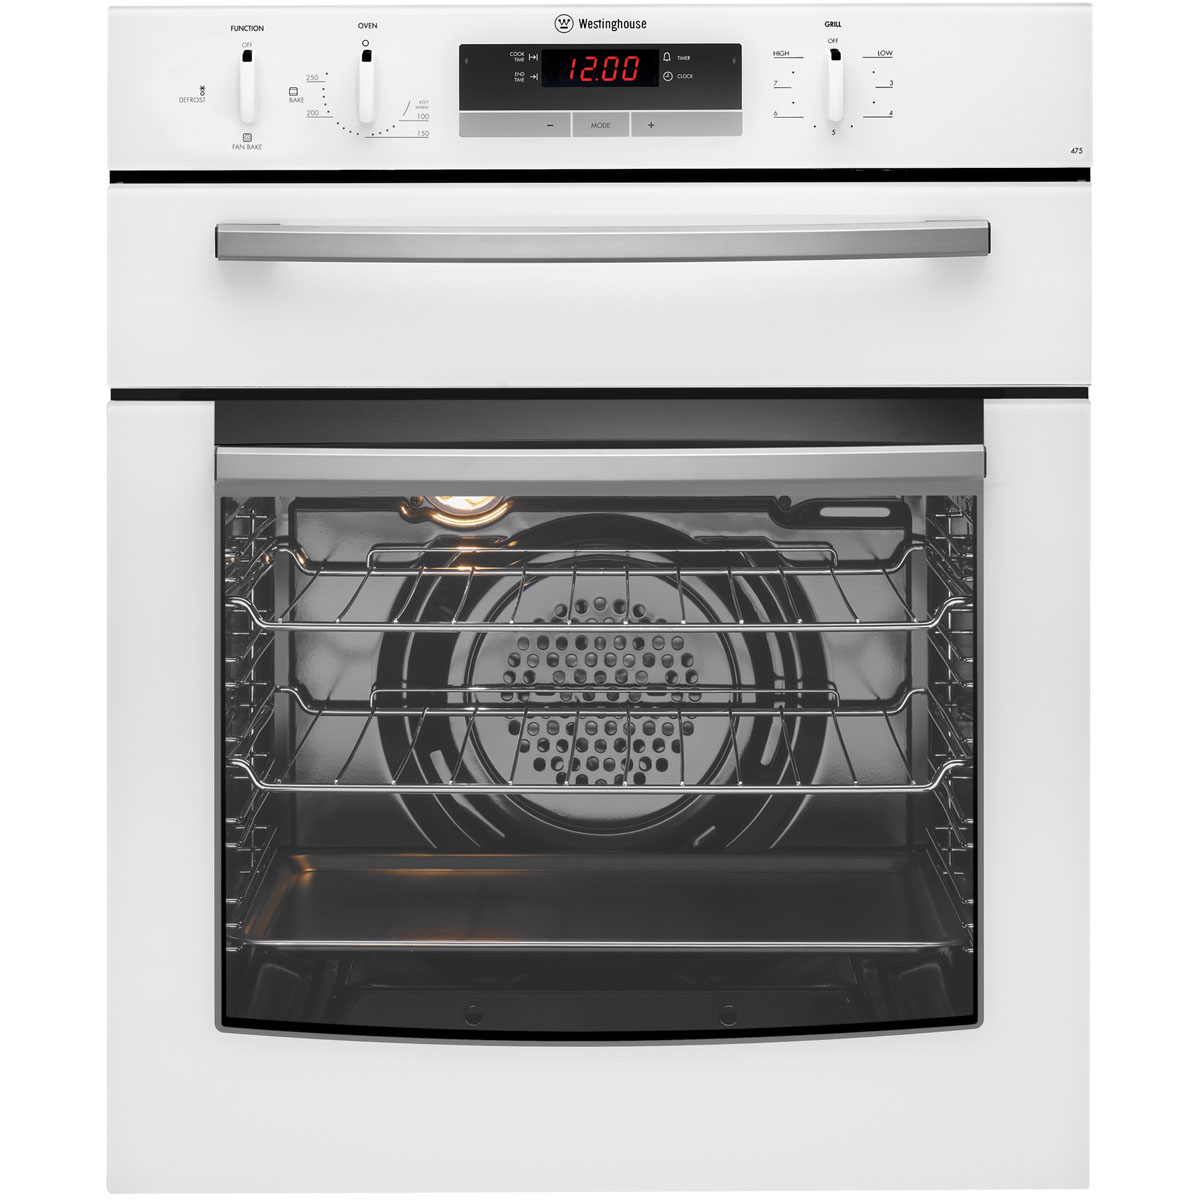 Westinghouse GGR475WLPG Gas Wall Oven